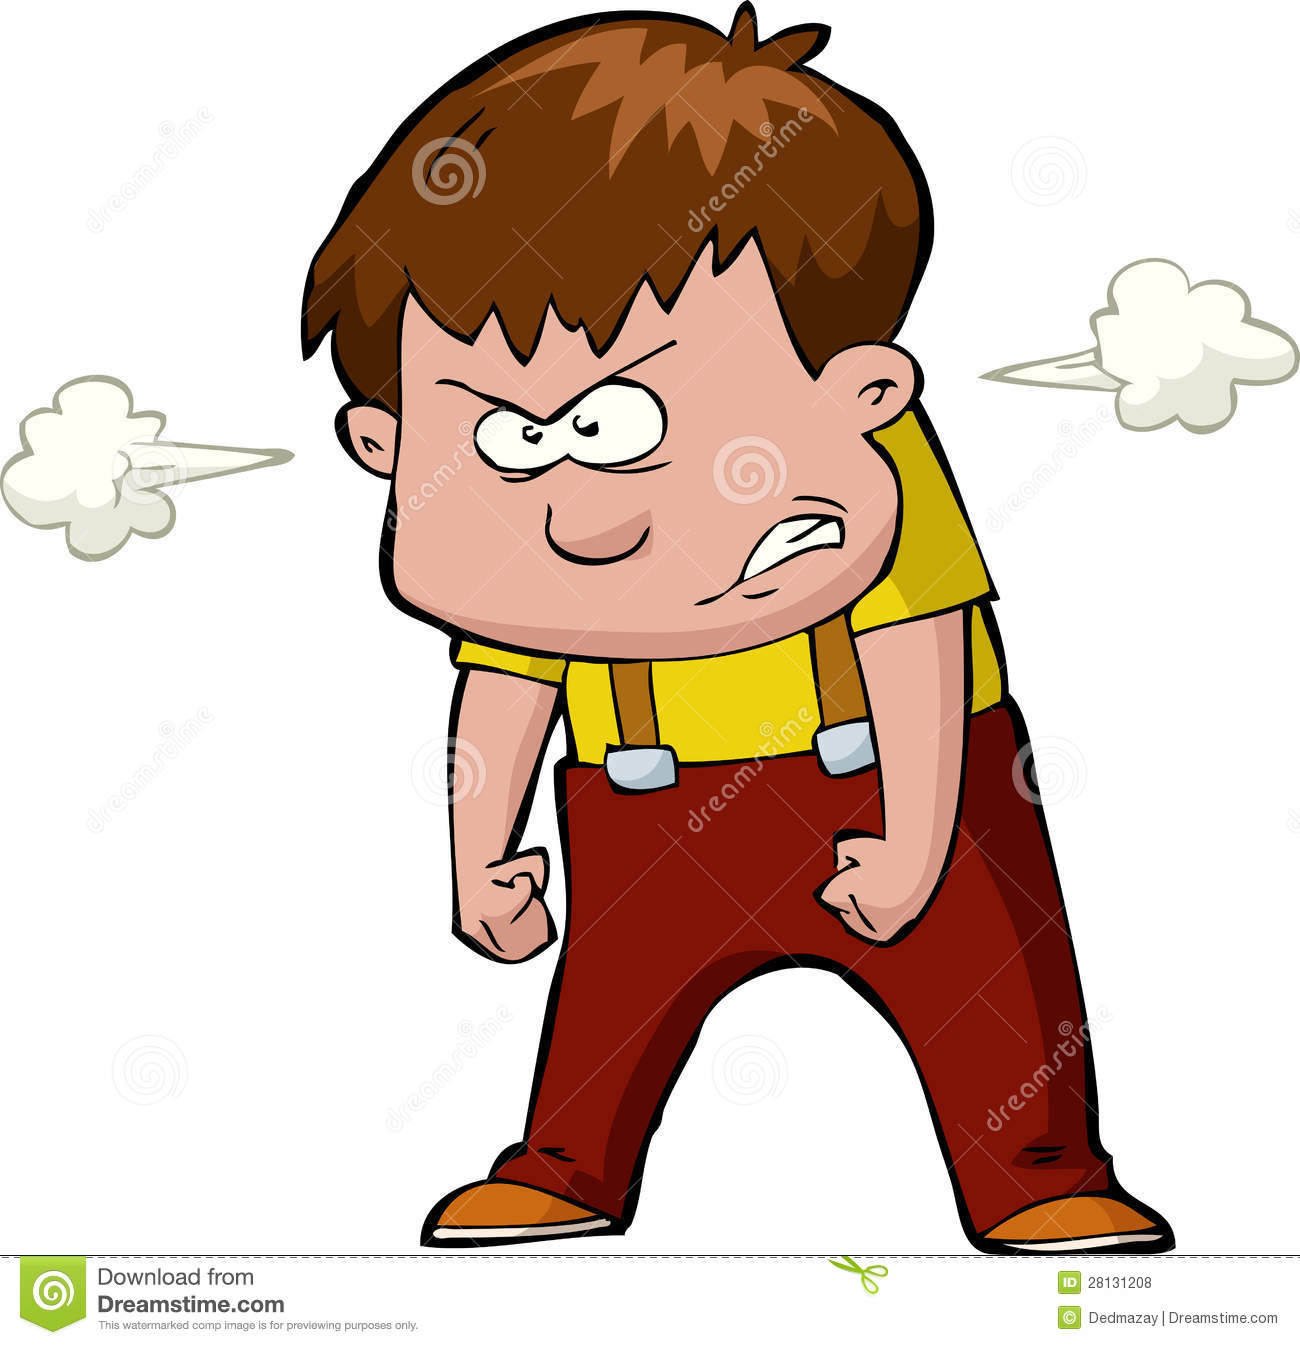 enraged child royalty free stock photos image 28131208 clipart judges scales clipart judgement